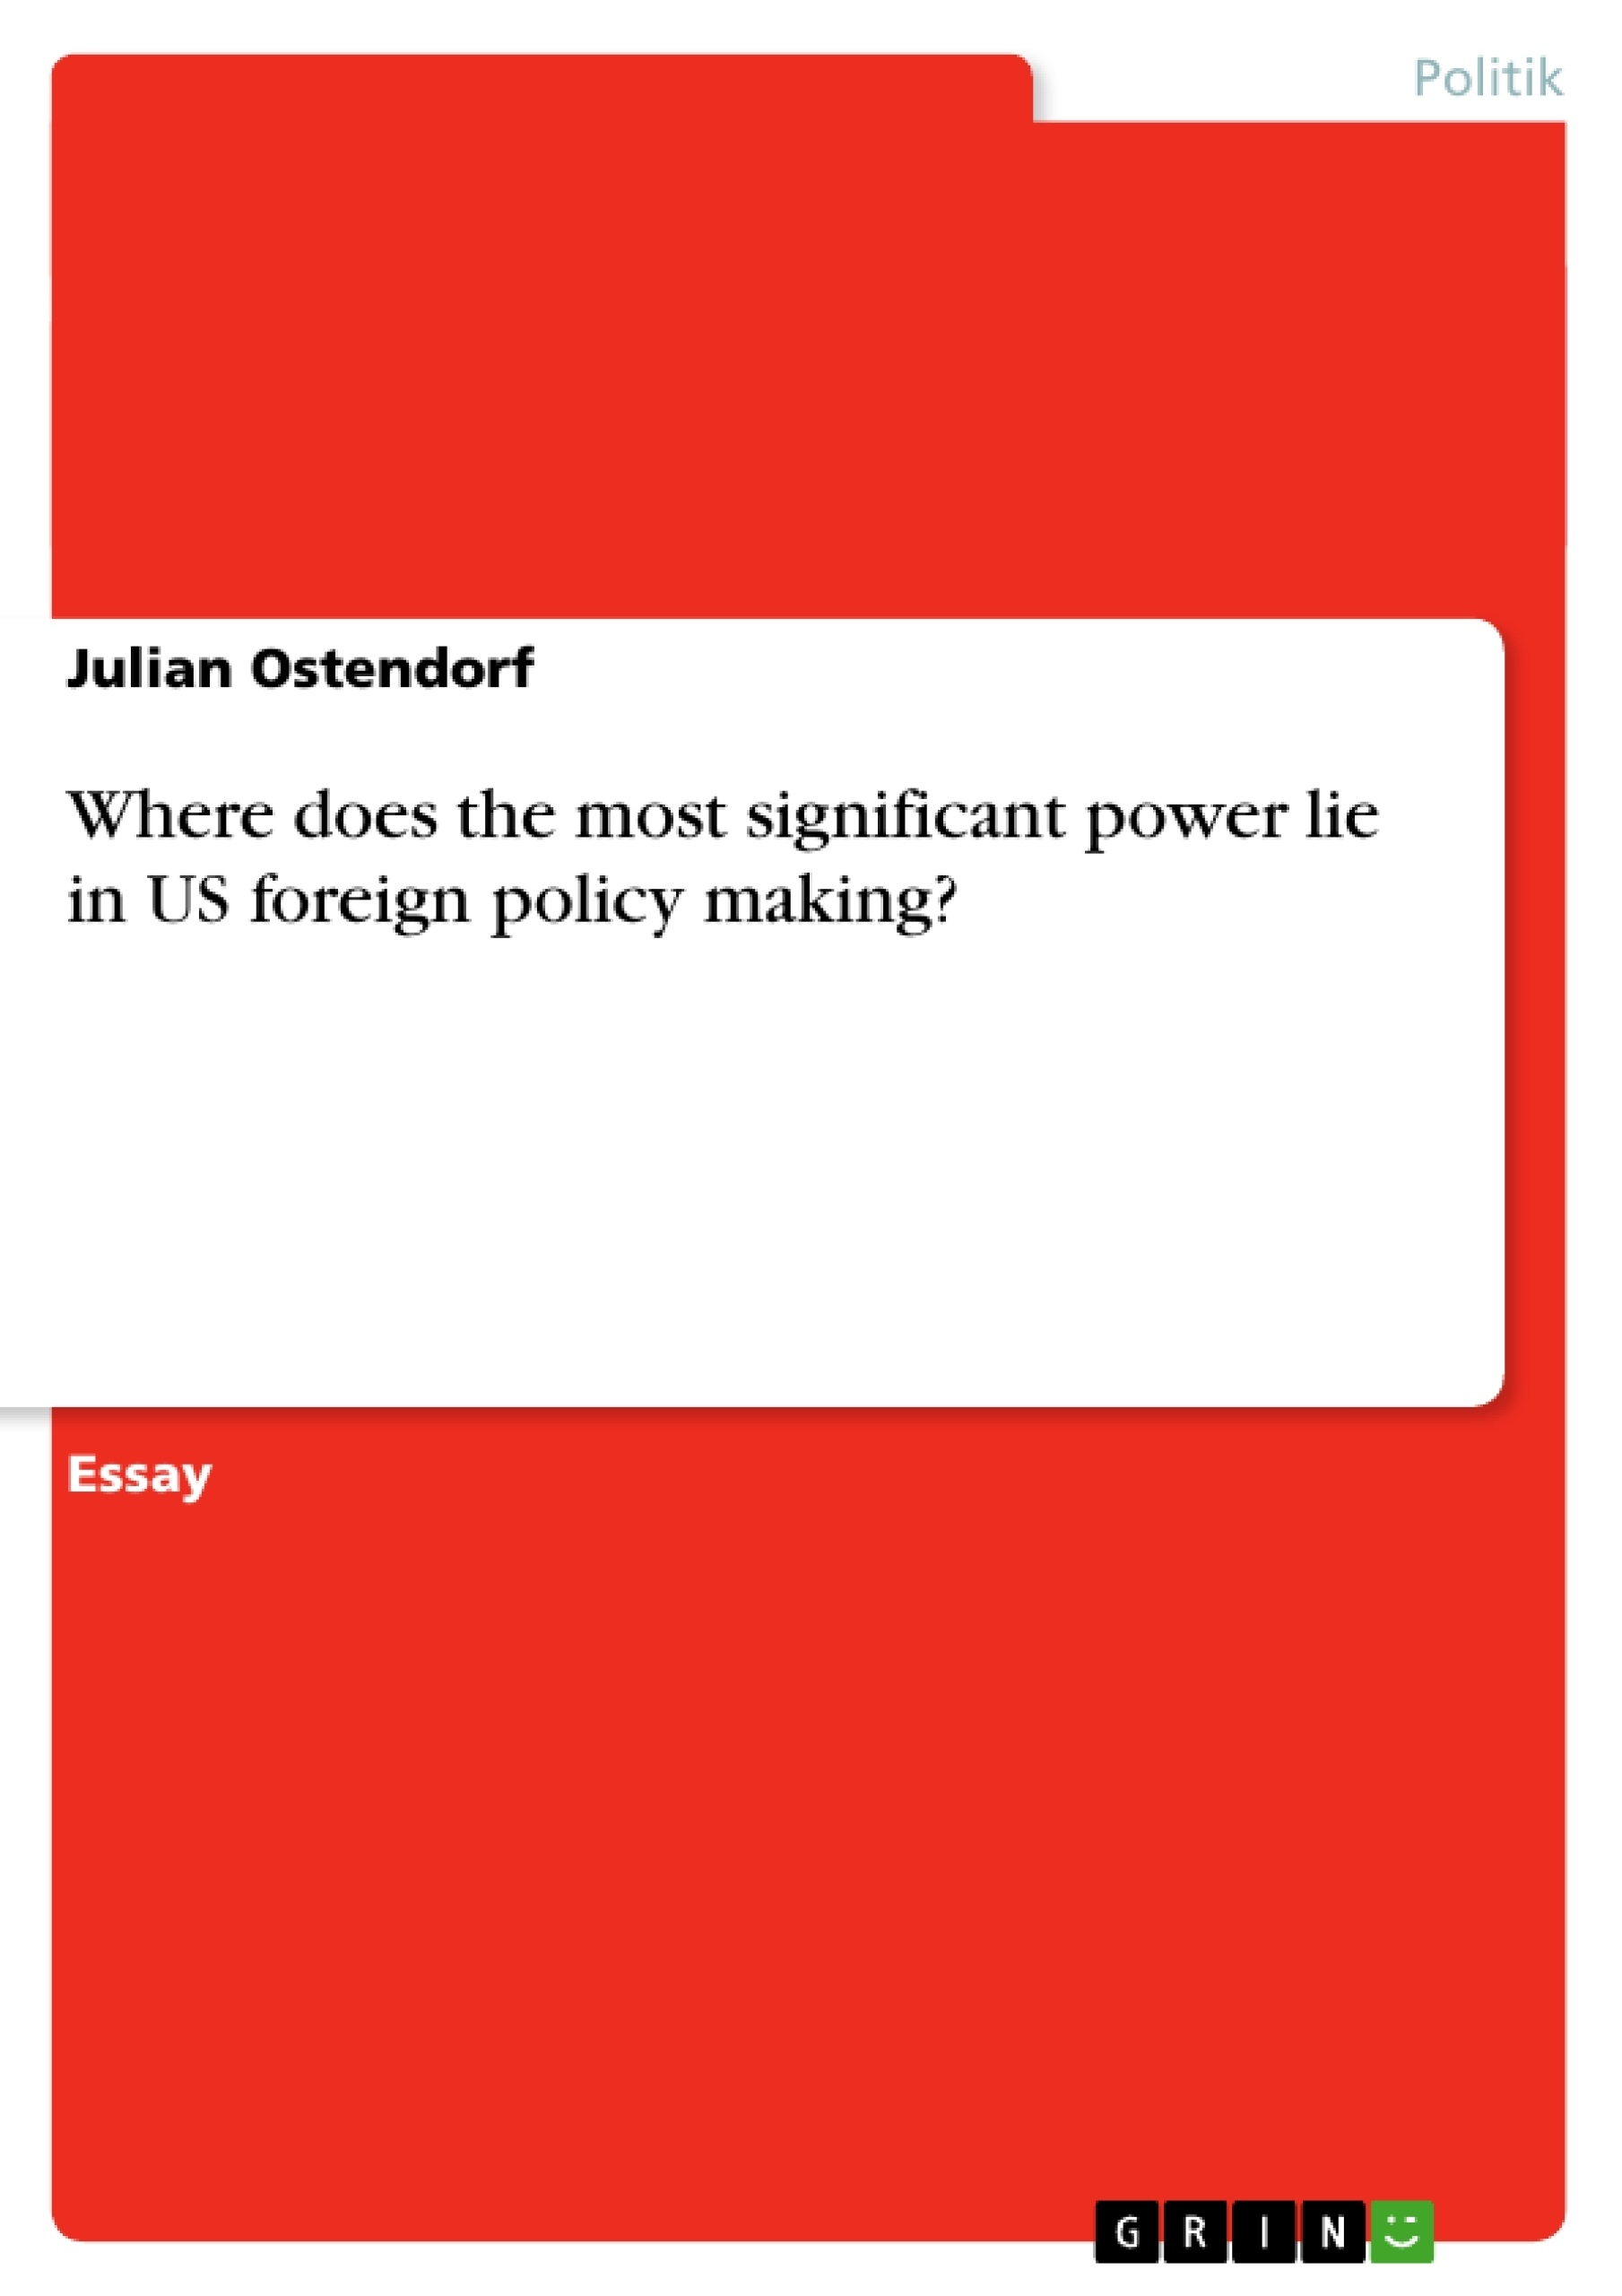 Titel: Where does the most significant power lie in US foreign policy making?